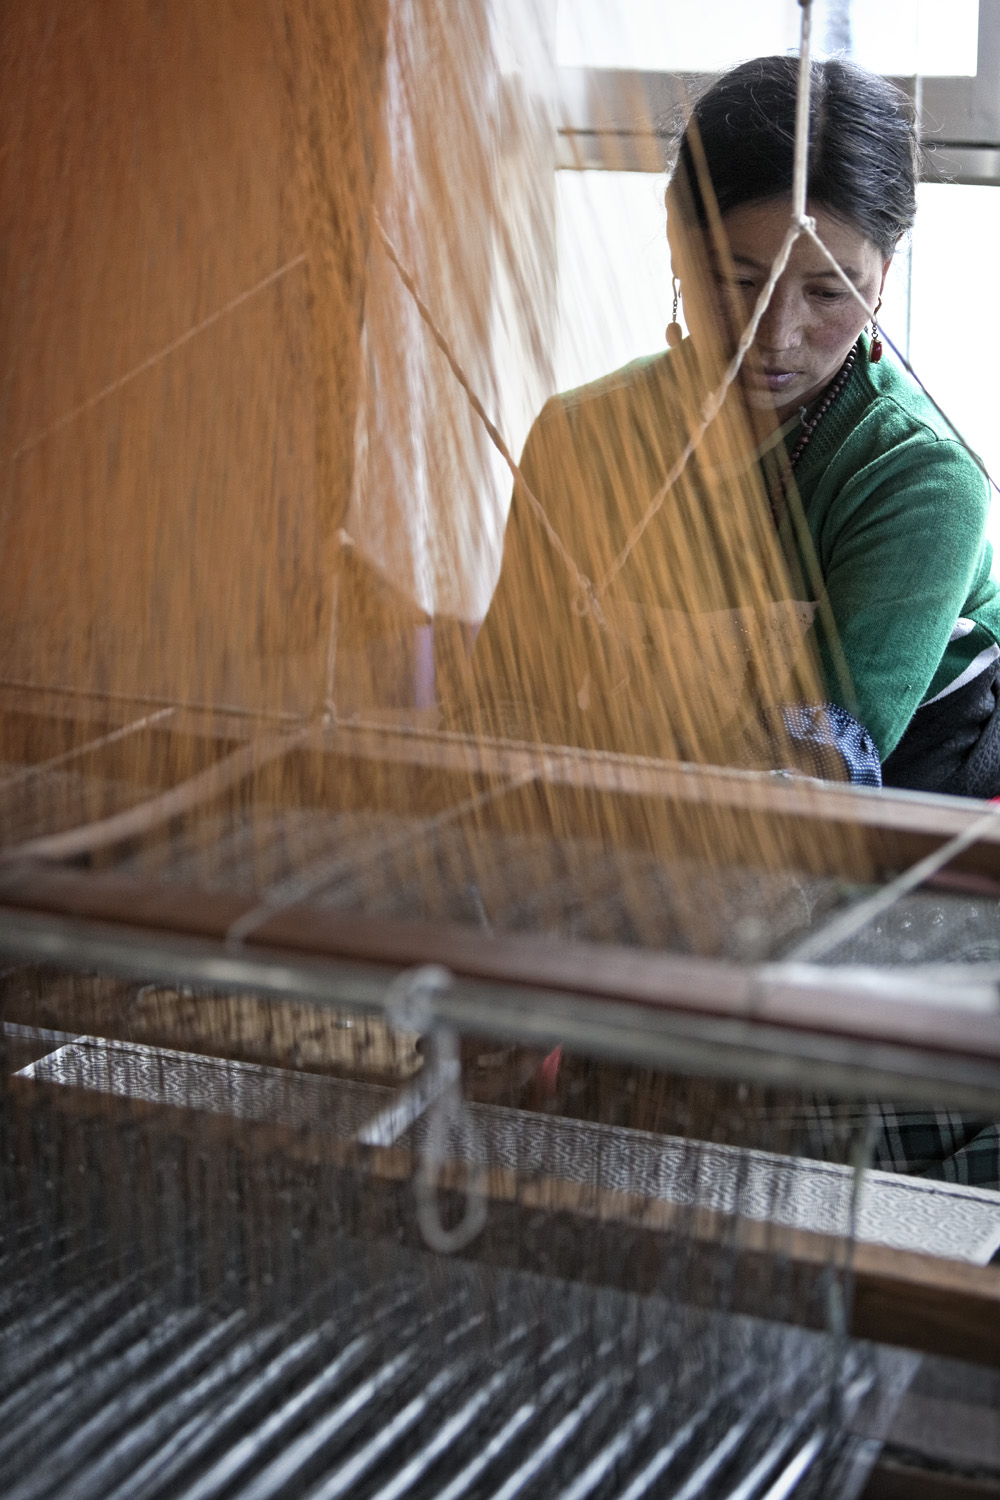 Weaving in the workshop at Norlha Textiles, Ritoma, Amdo, Tibet